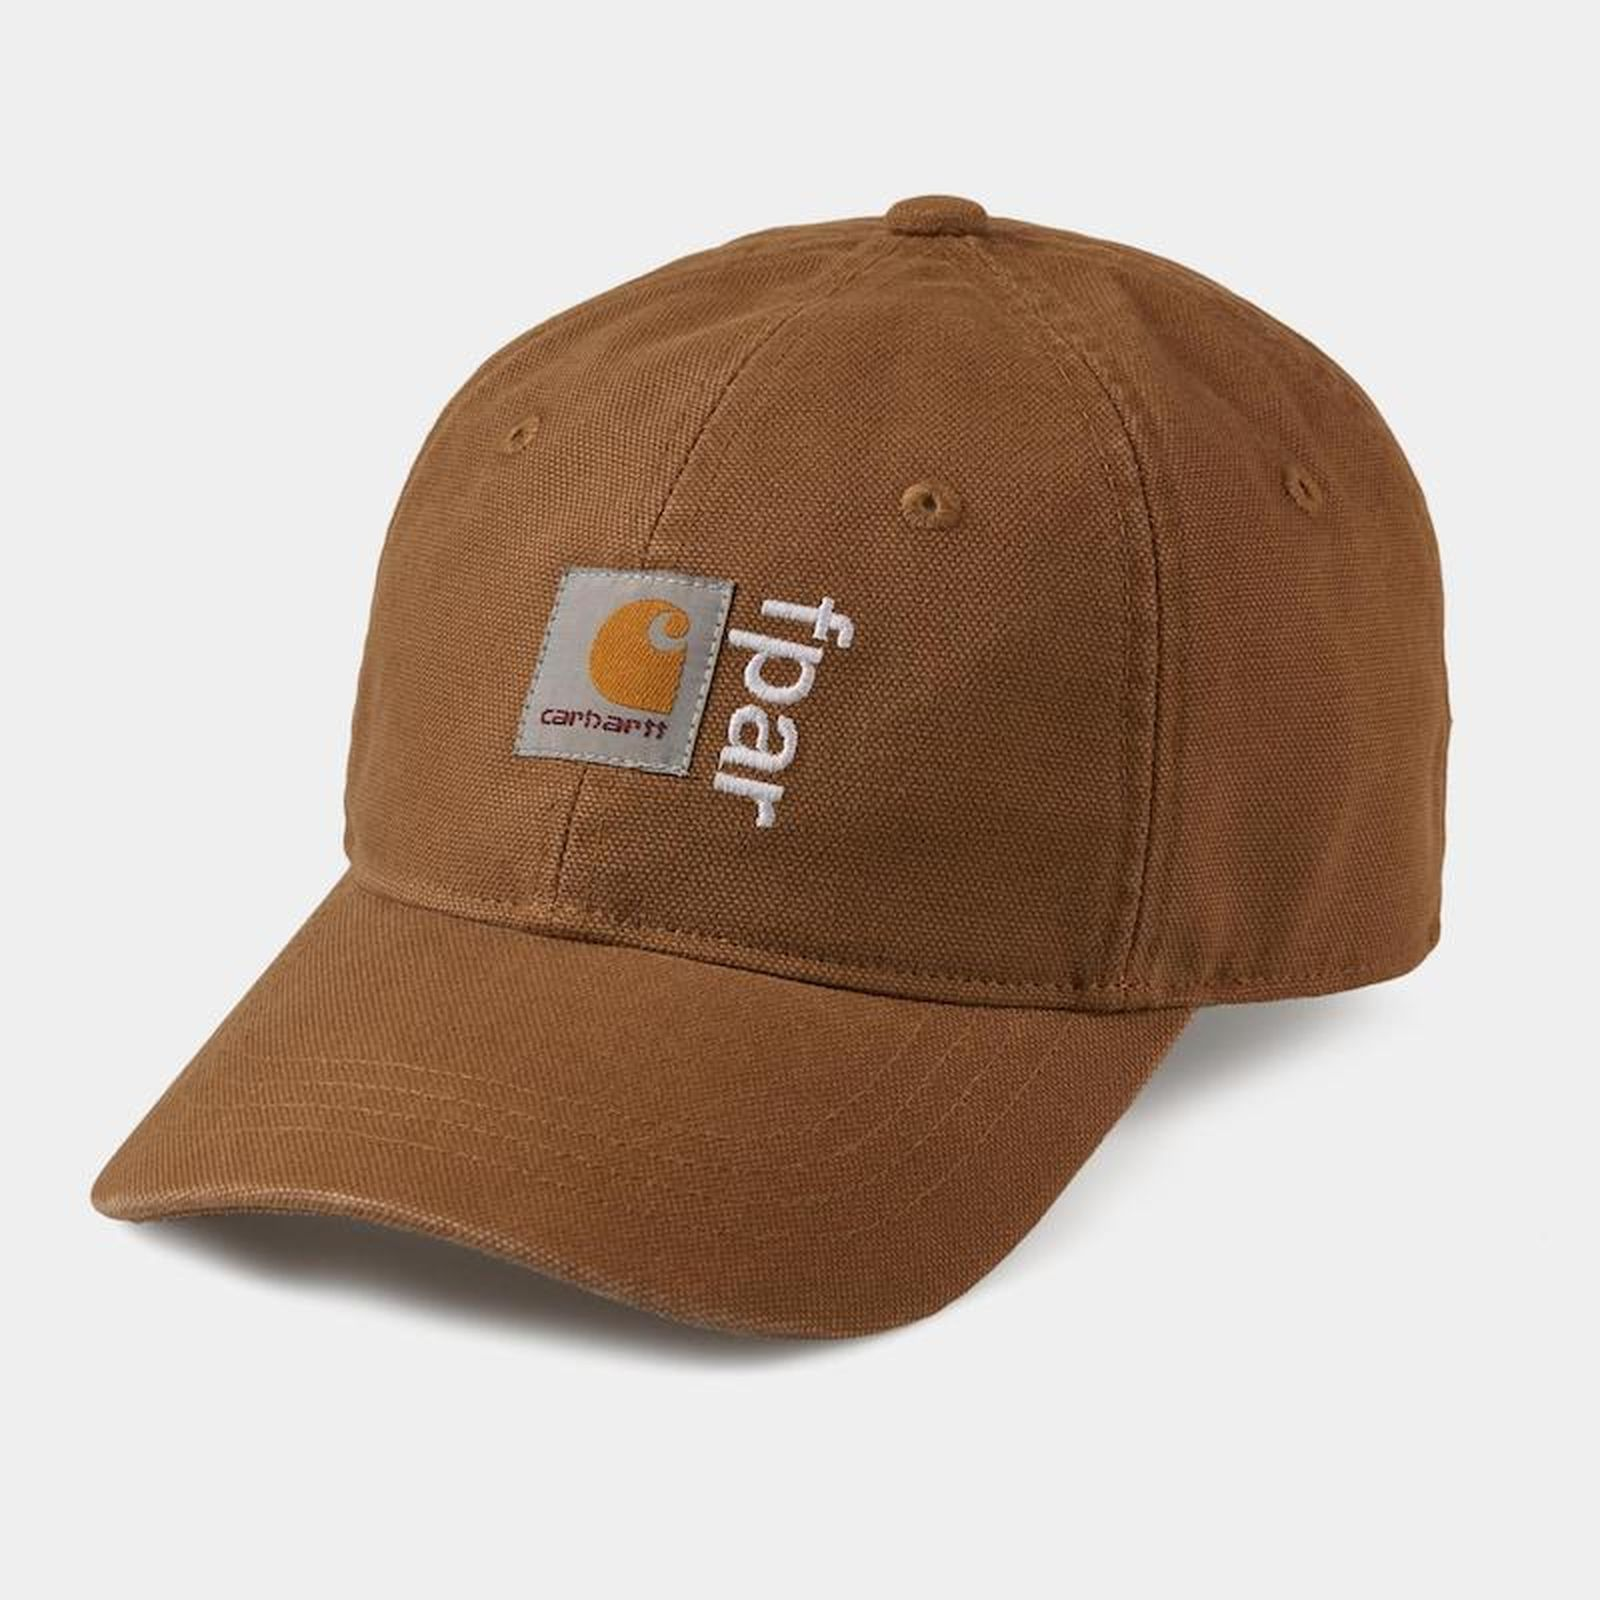 Carhartt WIP FORTY PERCENT AGAINST RIGHTS